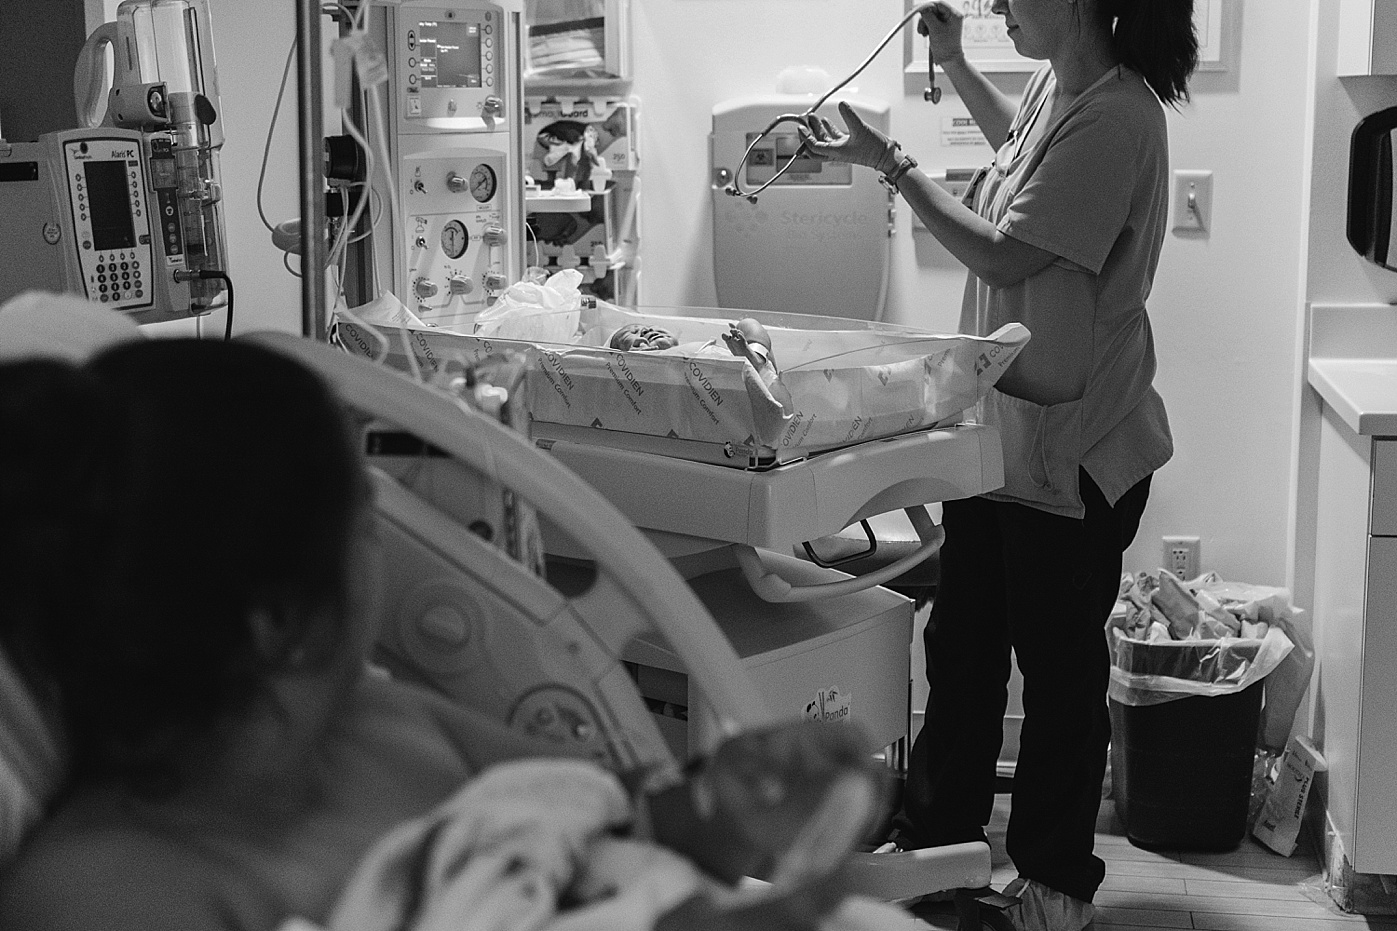 newborn being examined in hospital after birth